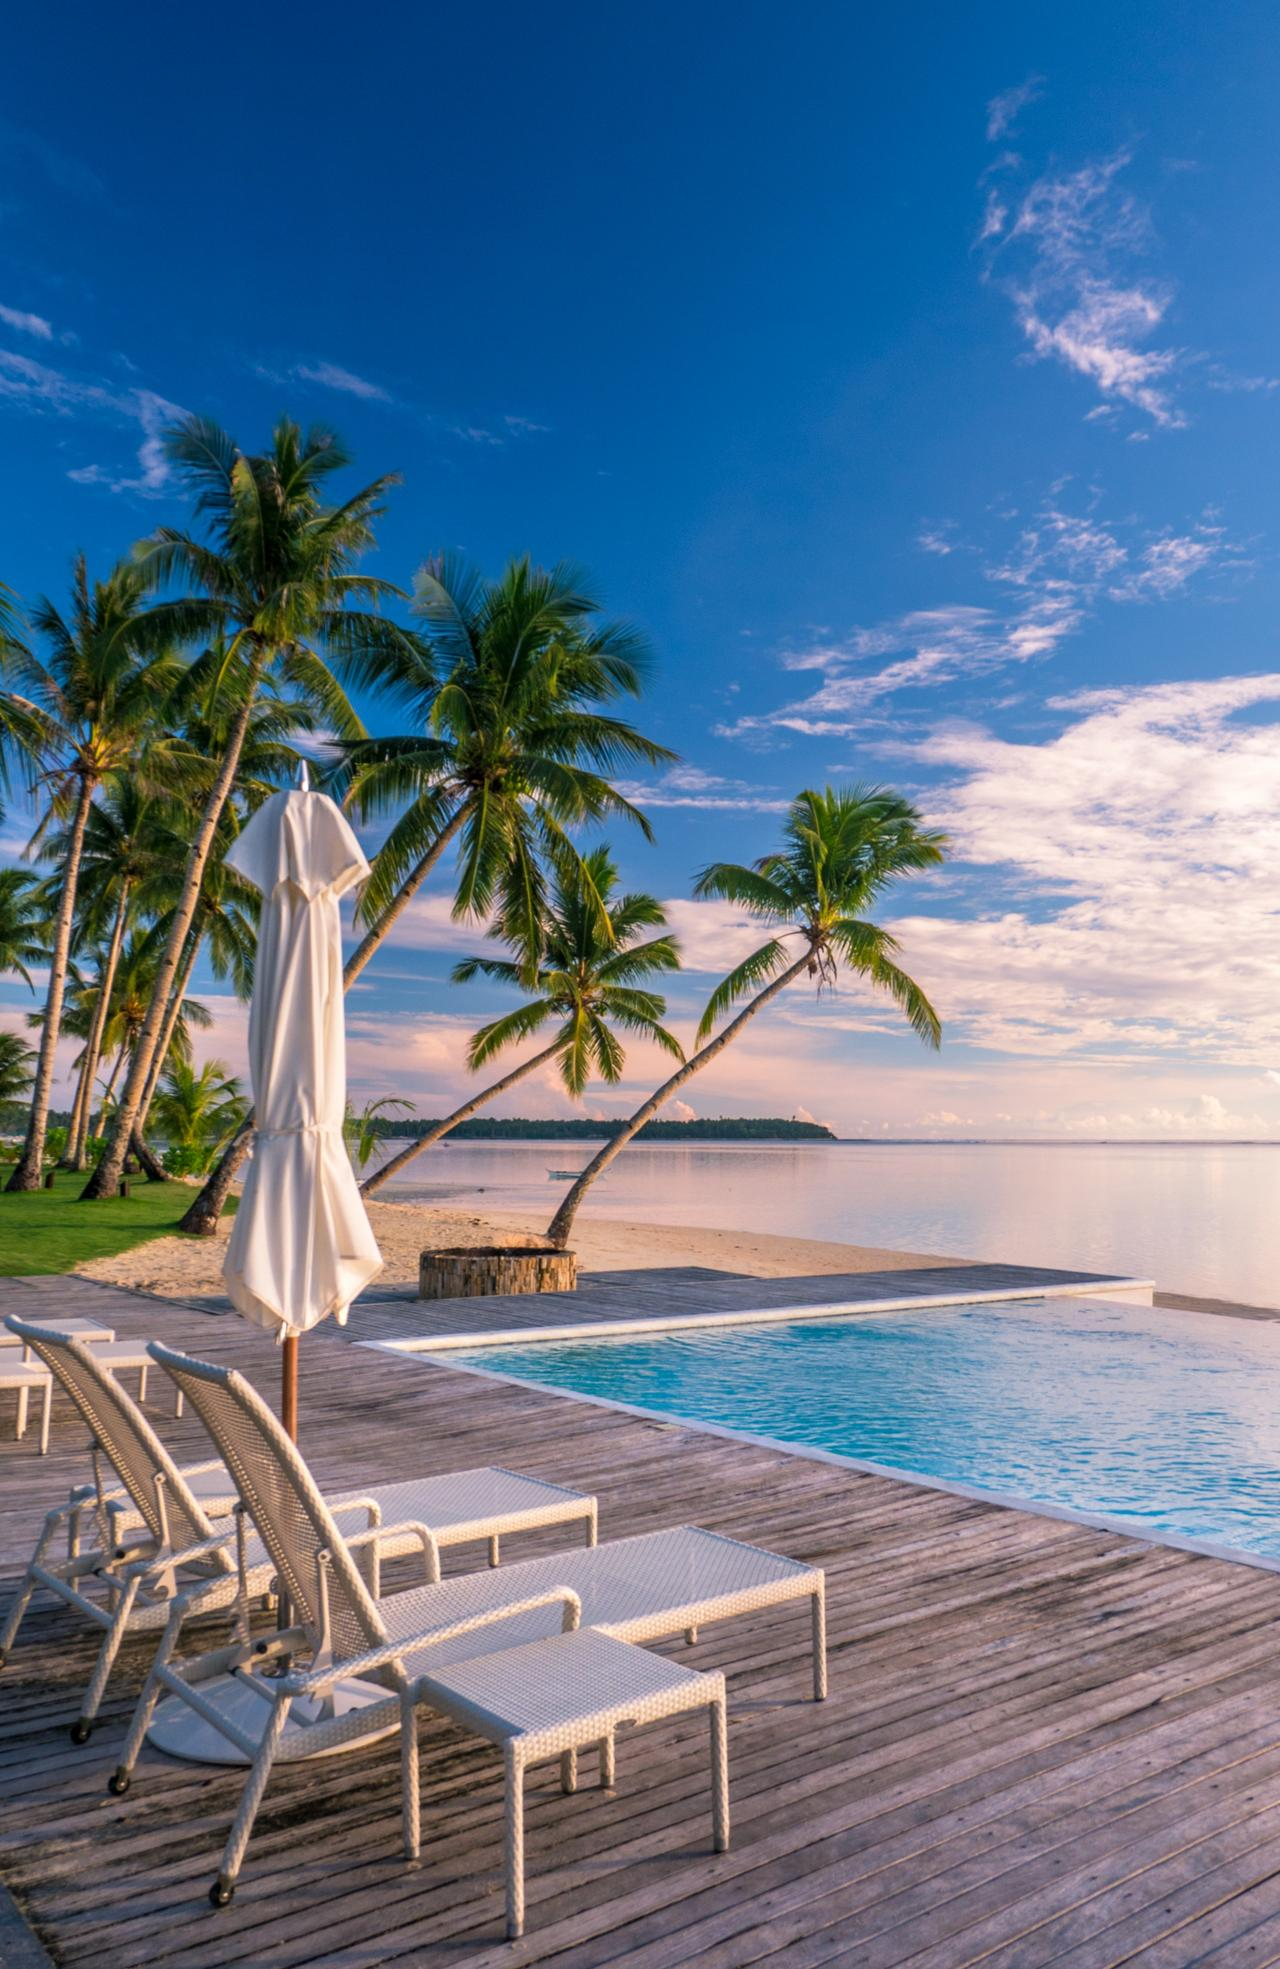 ESCAPE: Mark Fitz, Siargao Philippines - Isla Cabana Resort in Siargao. Picture: Mark Fitz